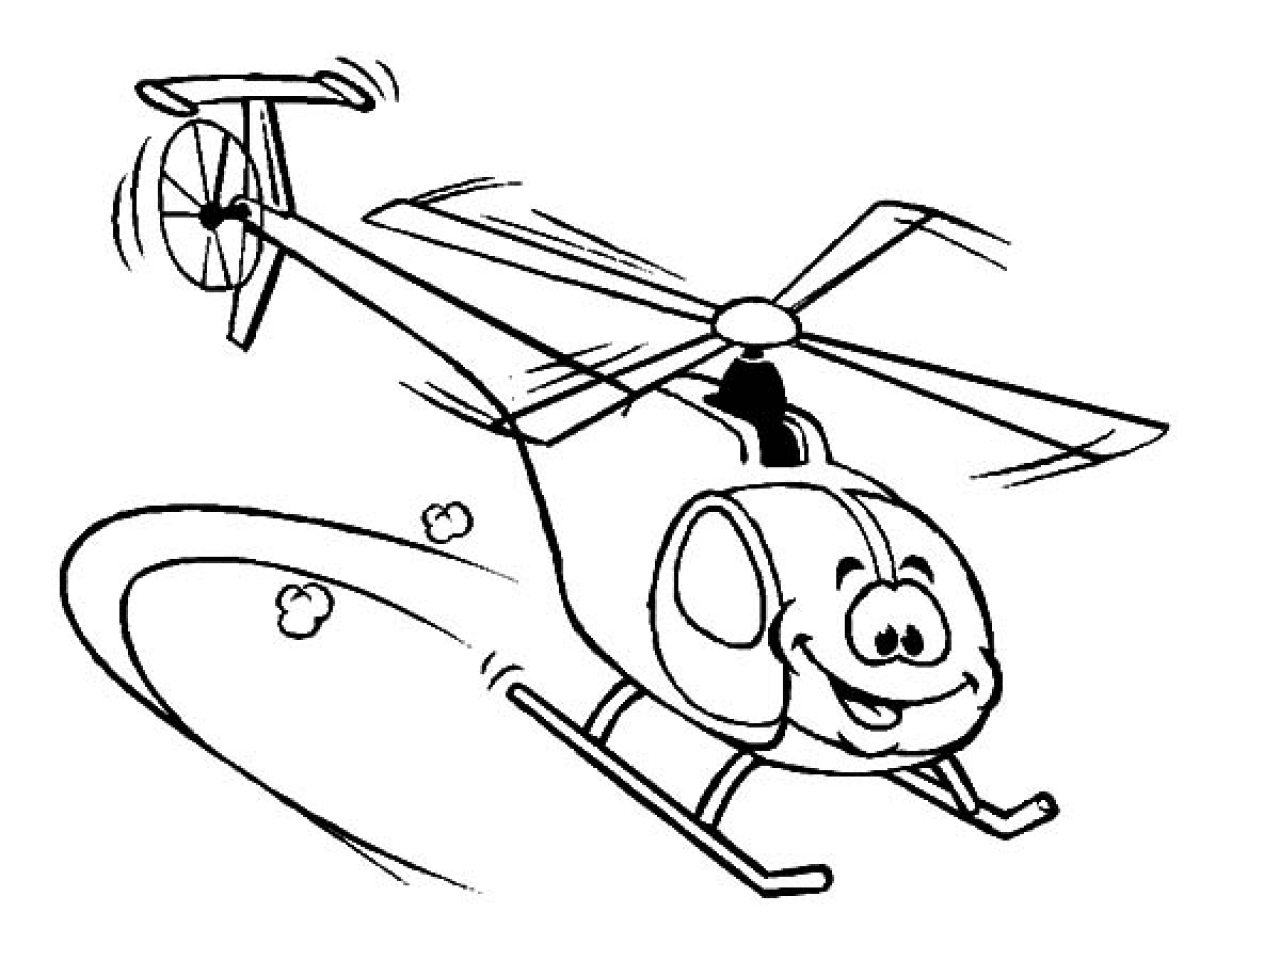 1280x960 Helicopter Coloring Pages